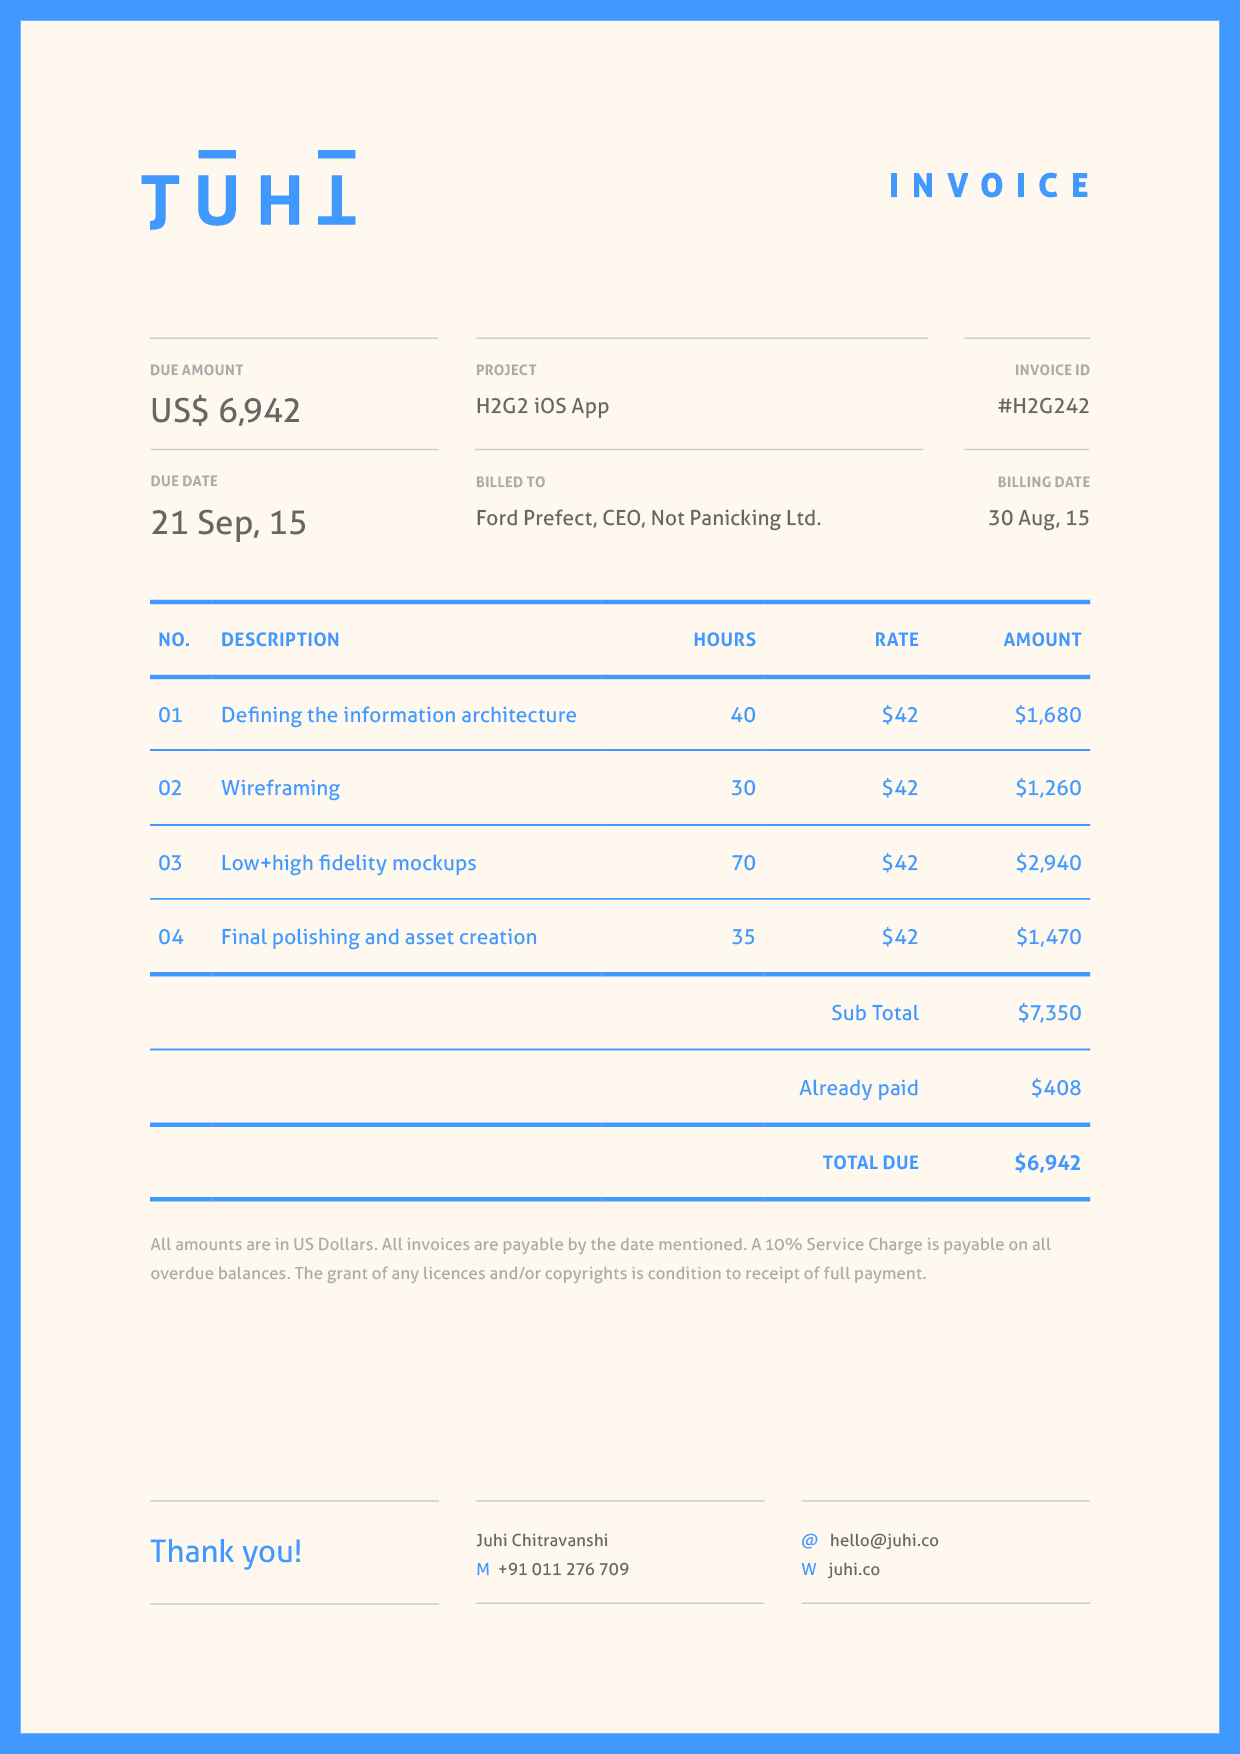 Ultrablogus  Outstanding Dont Hold Back On Your Invoice  Inspiring Designs  With Interesting Invoice By Juhi Chitravanshi Follow With Breathtaking What Is Trust Receipt Loan Also Credit Card Machine Receipt Paper In Addition Missing Receipt Form Template And Receipt Book Custom Print As Well As Receipts Expensify Com Additionally Receipt Of Payment Form From Inspirationfeedcom With Ultrablogus  Interesting Dont Hold Back On Your Invoice  Inspiring Designs  With Breathtaking Invoice By Juhi Chitravanshi Follow And Outstanding What Is Trust Receipt Loan Also Credit Card Machine Receipt Paper In Addition Missing Receipt Form Template From Inspirationfeedcom